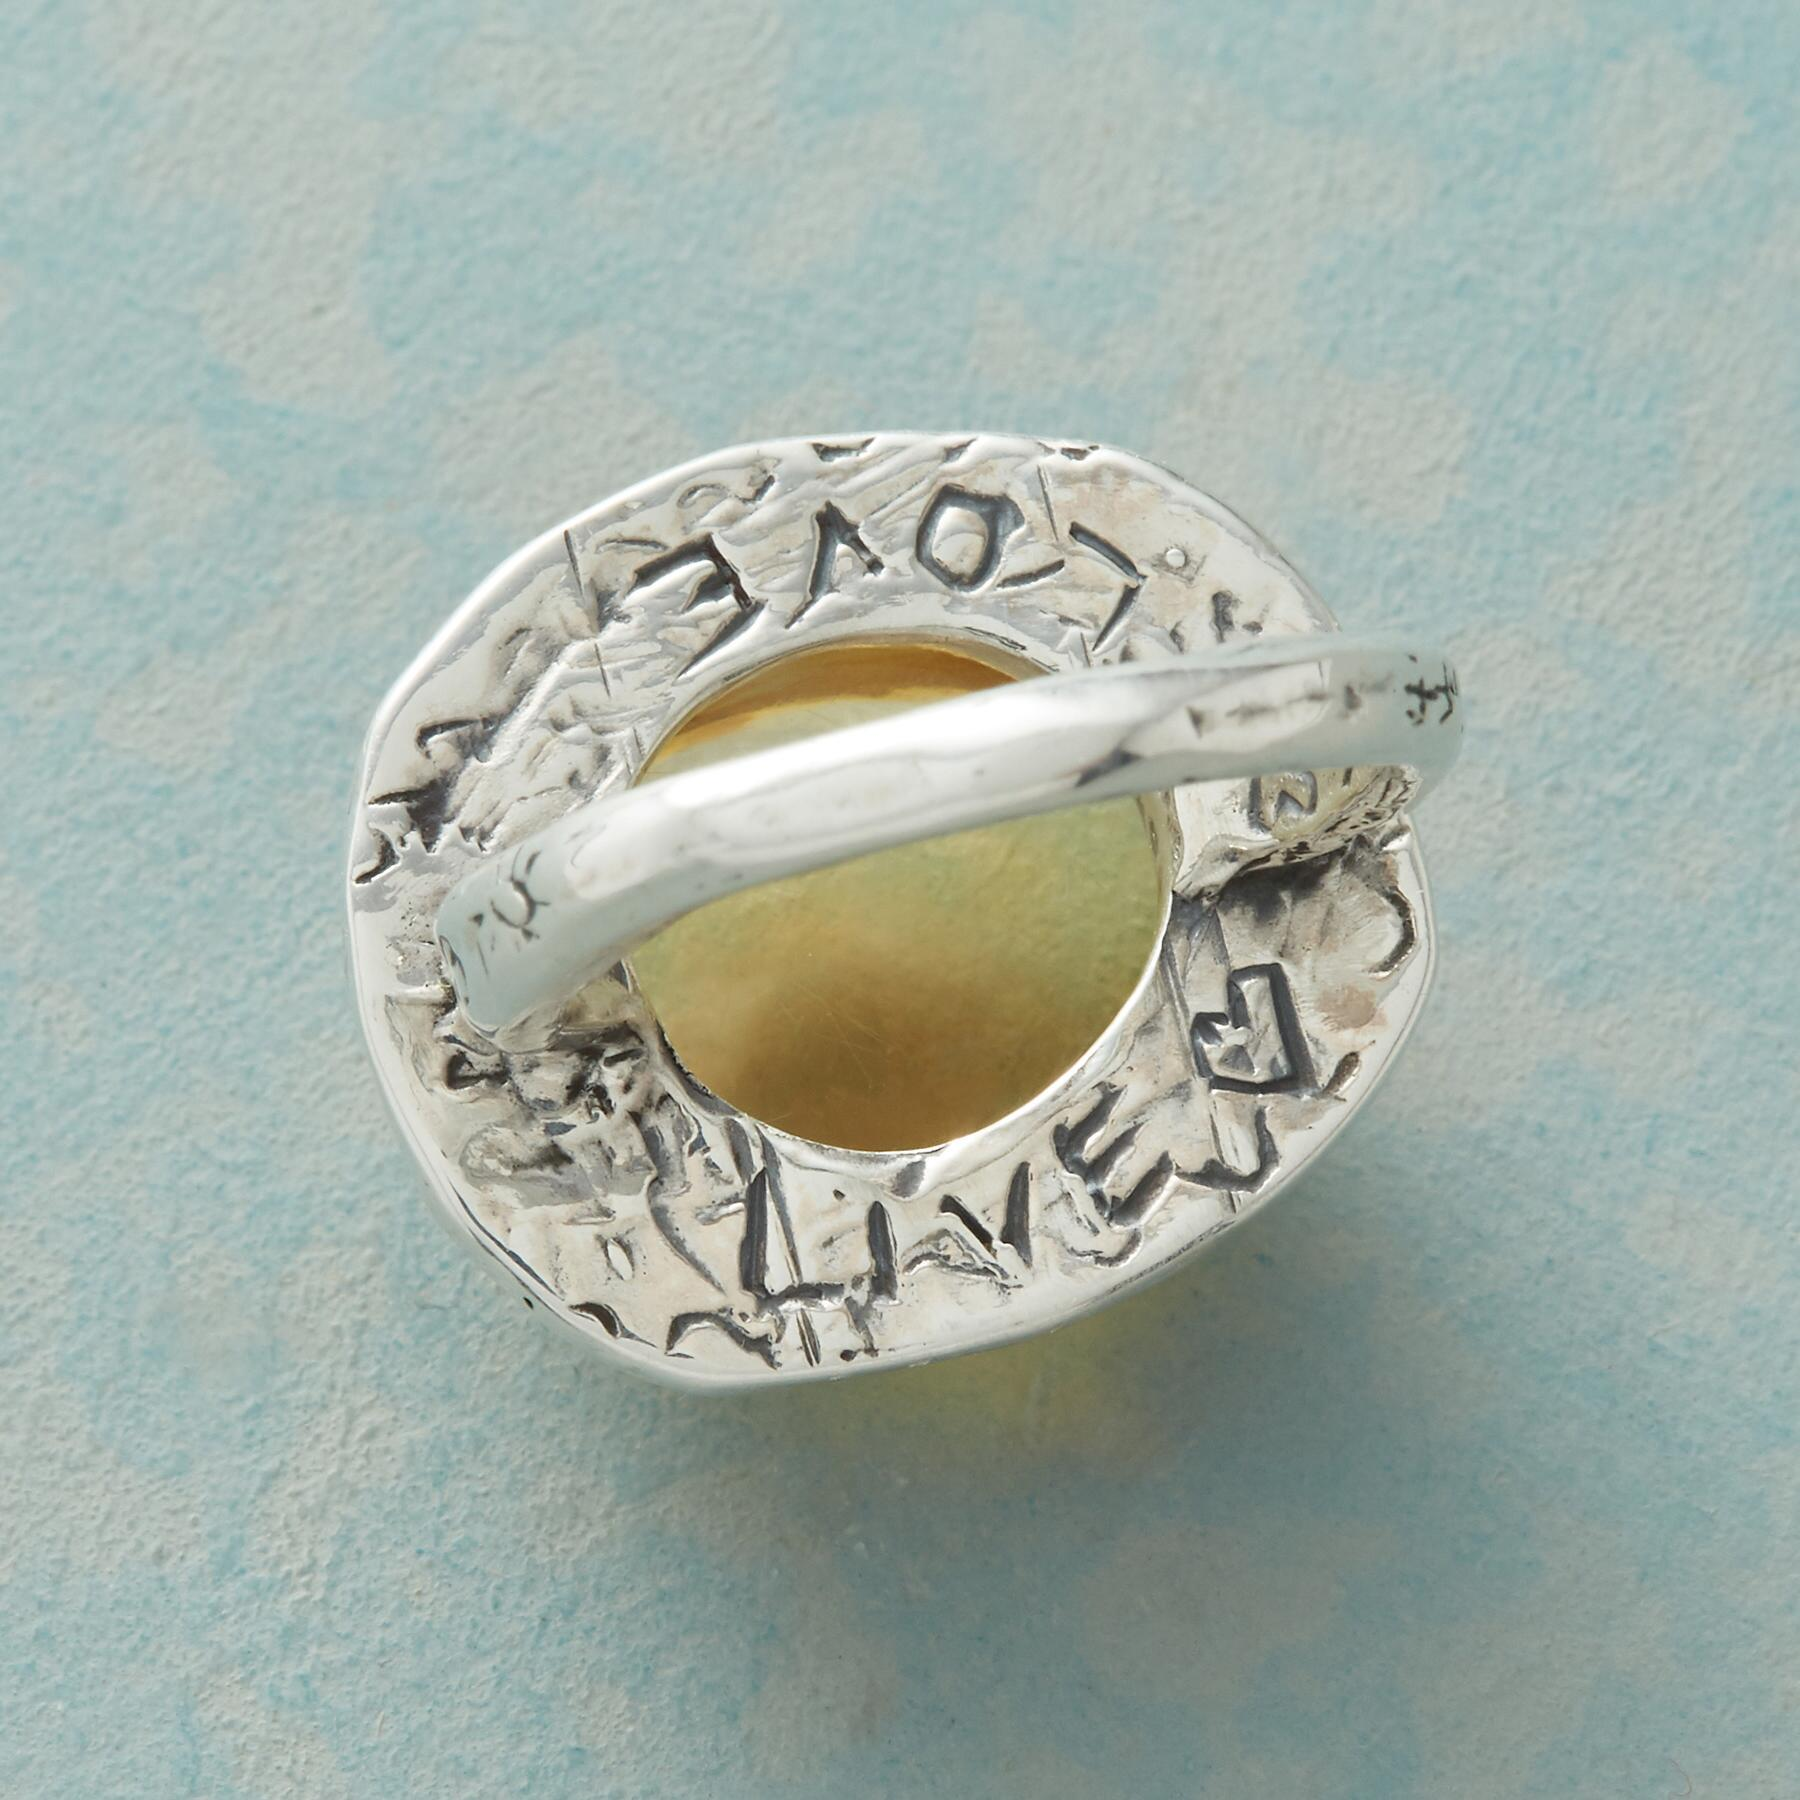 SOL OF LIFE RING: View 3